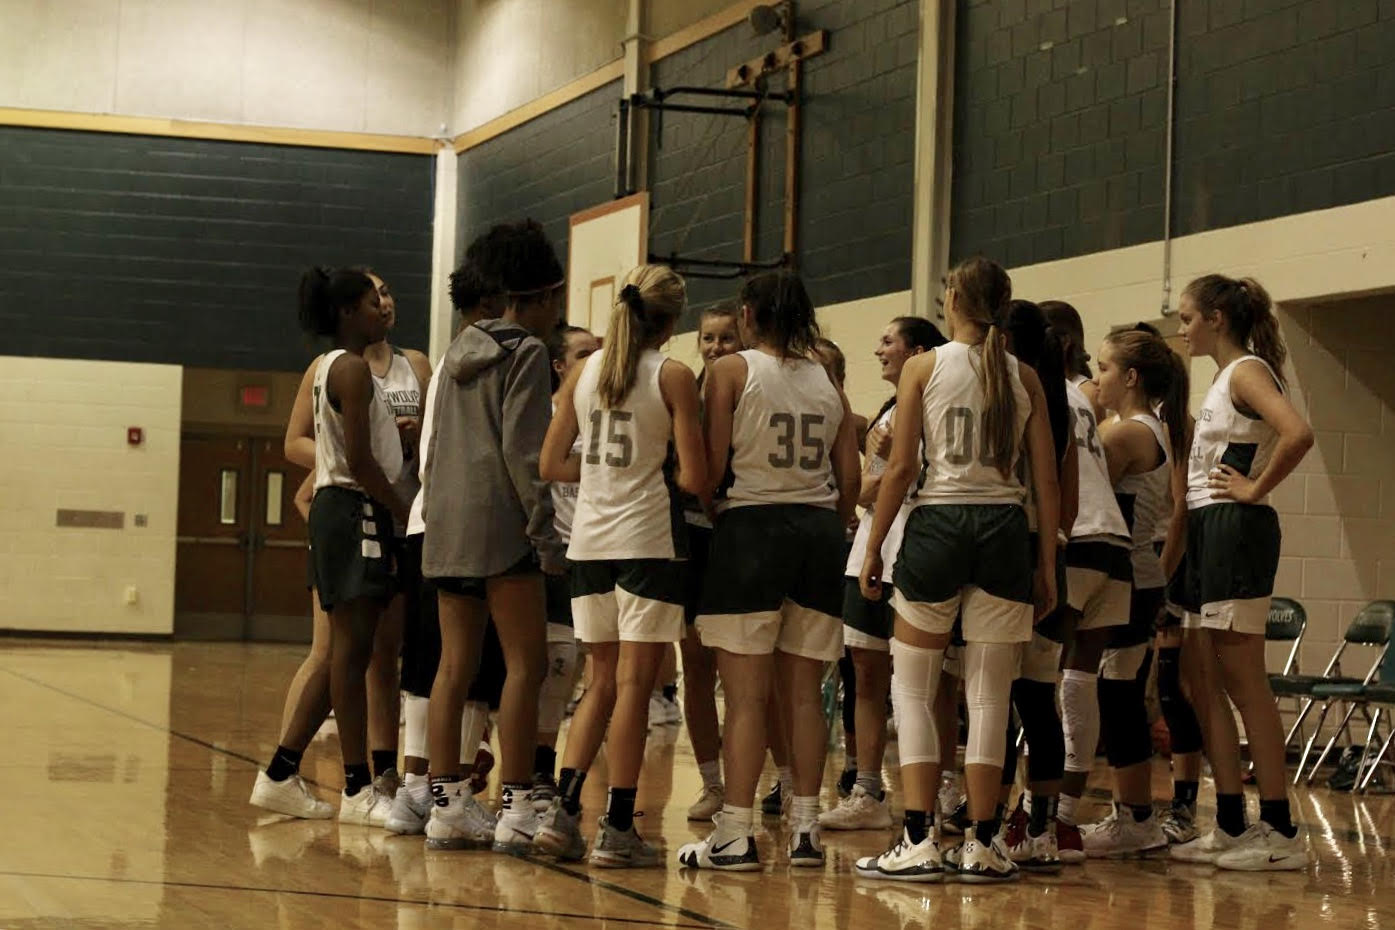 The JV team huddles around seniors Takara Holst and Nicole Leff during a timeout at Fall League game vs. Lake Travis. The teams, Freshman, JV, and Varsity, all came out on top of their Lake Travis games. The younger teams look up to the returning players for support and example during Fall League and even into the season.